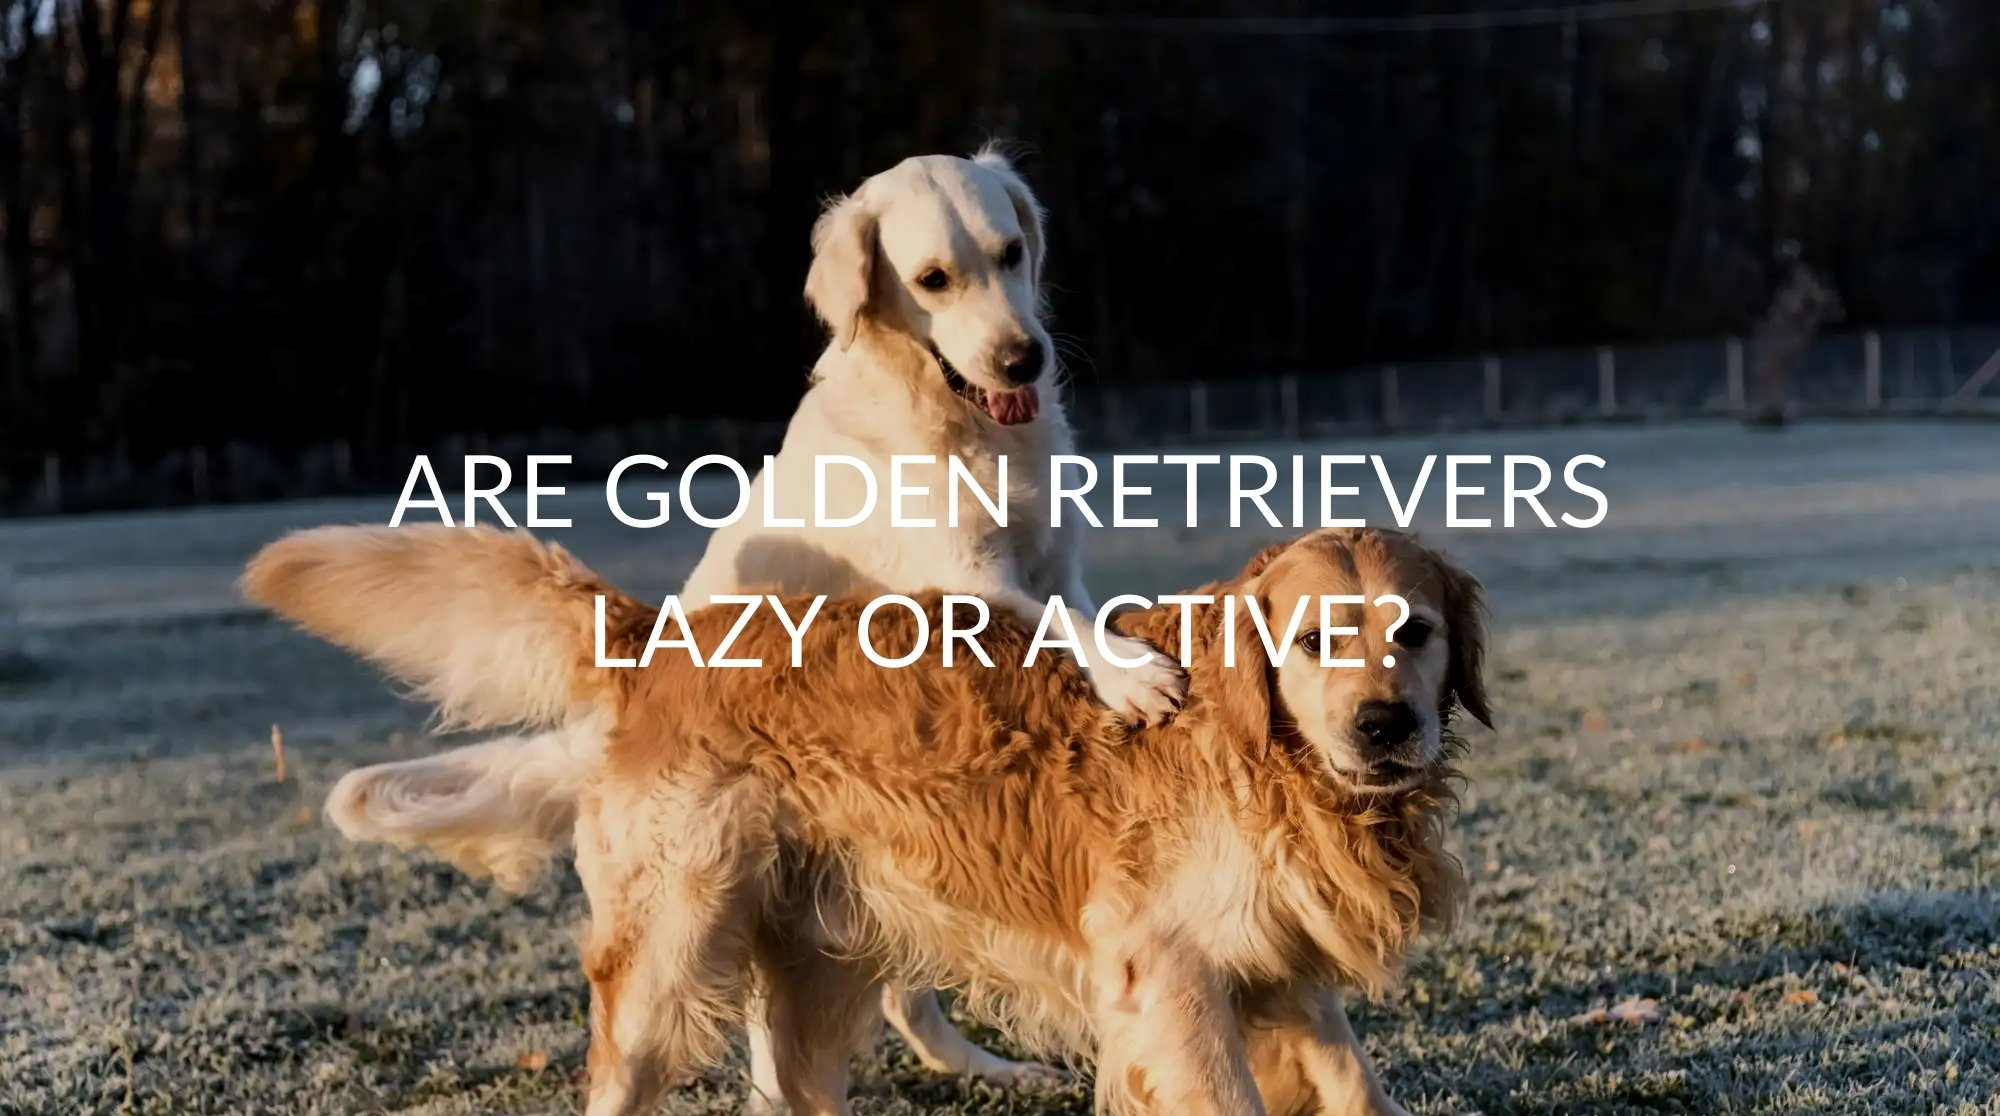 Are Golden Retrievers Lazy or Active?